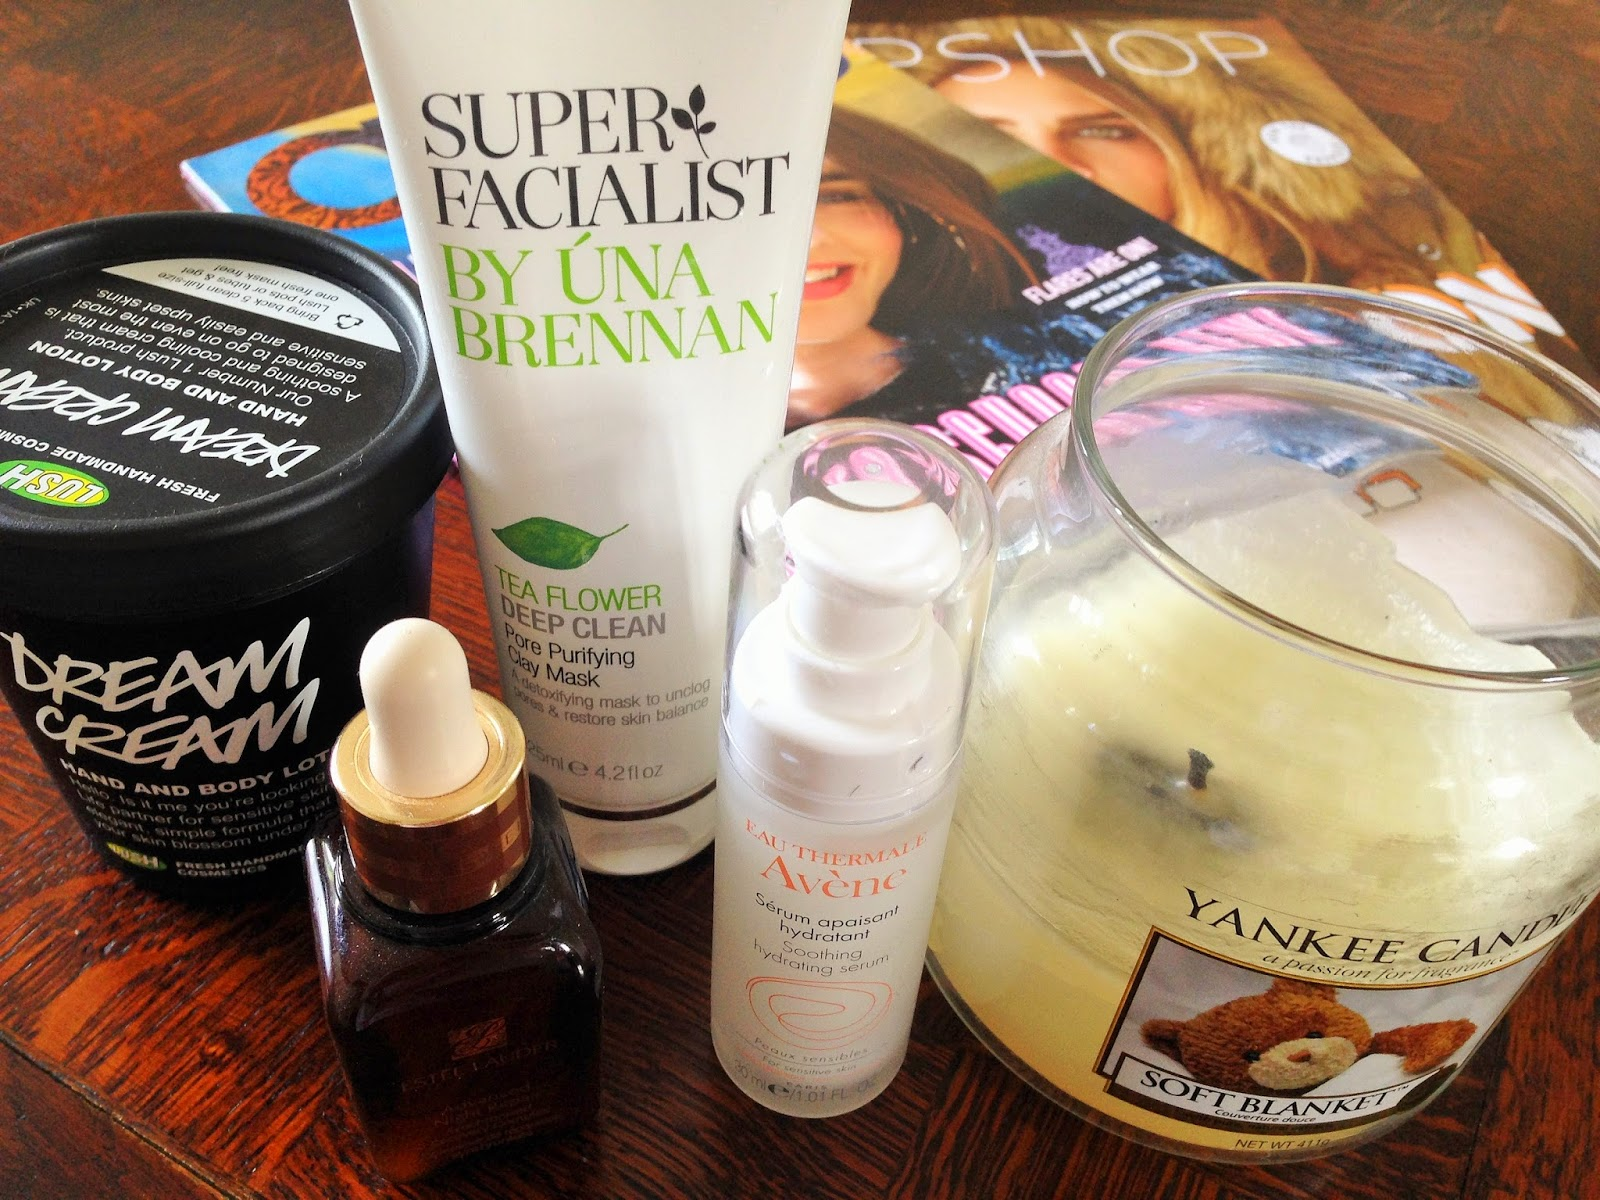 Pamper Products Estee Lauder, Lush, Avene and Una Brennan